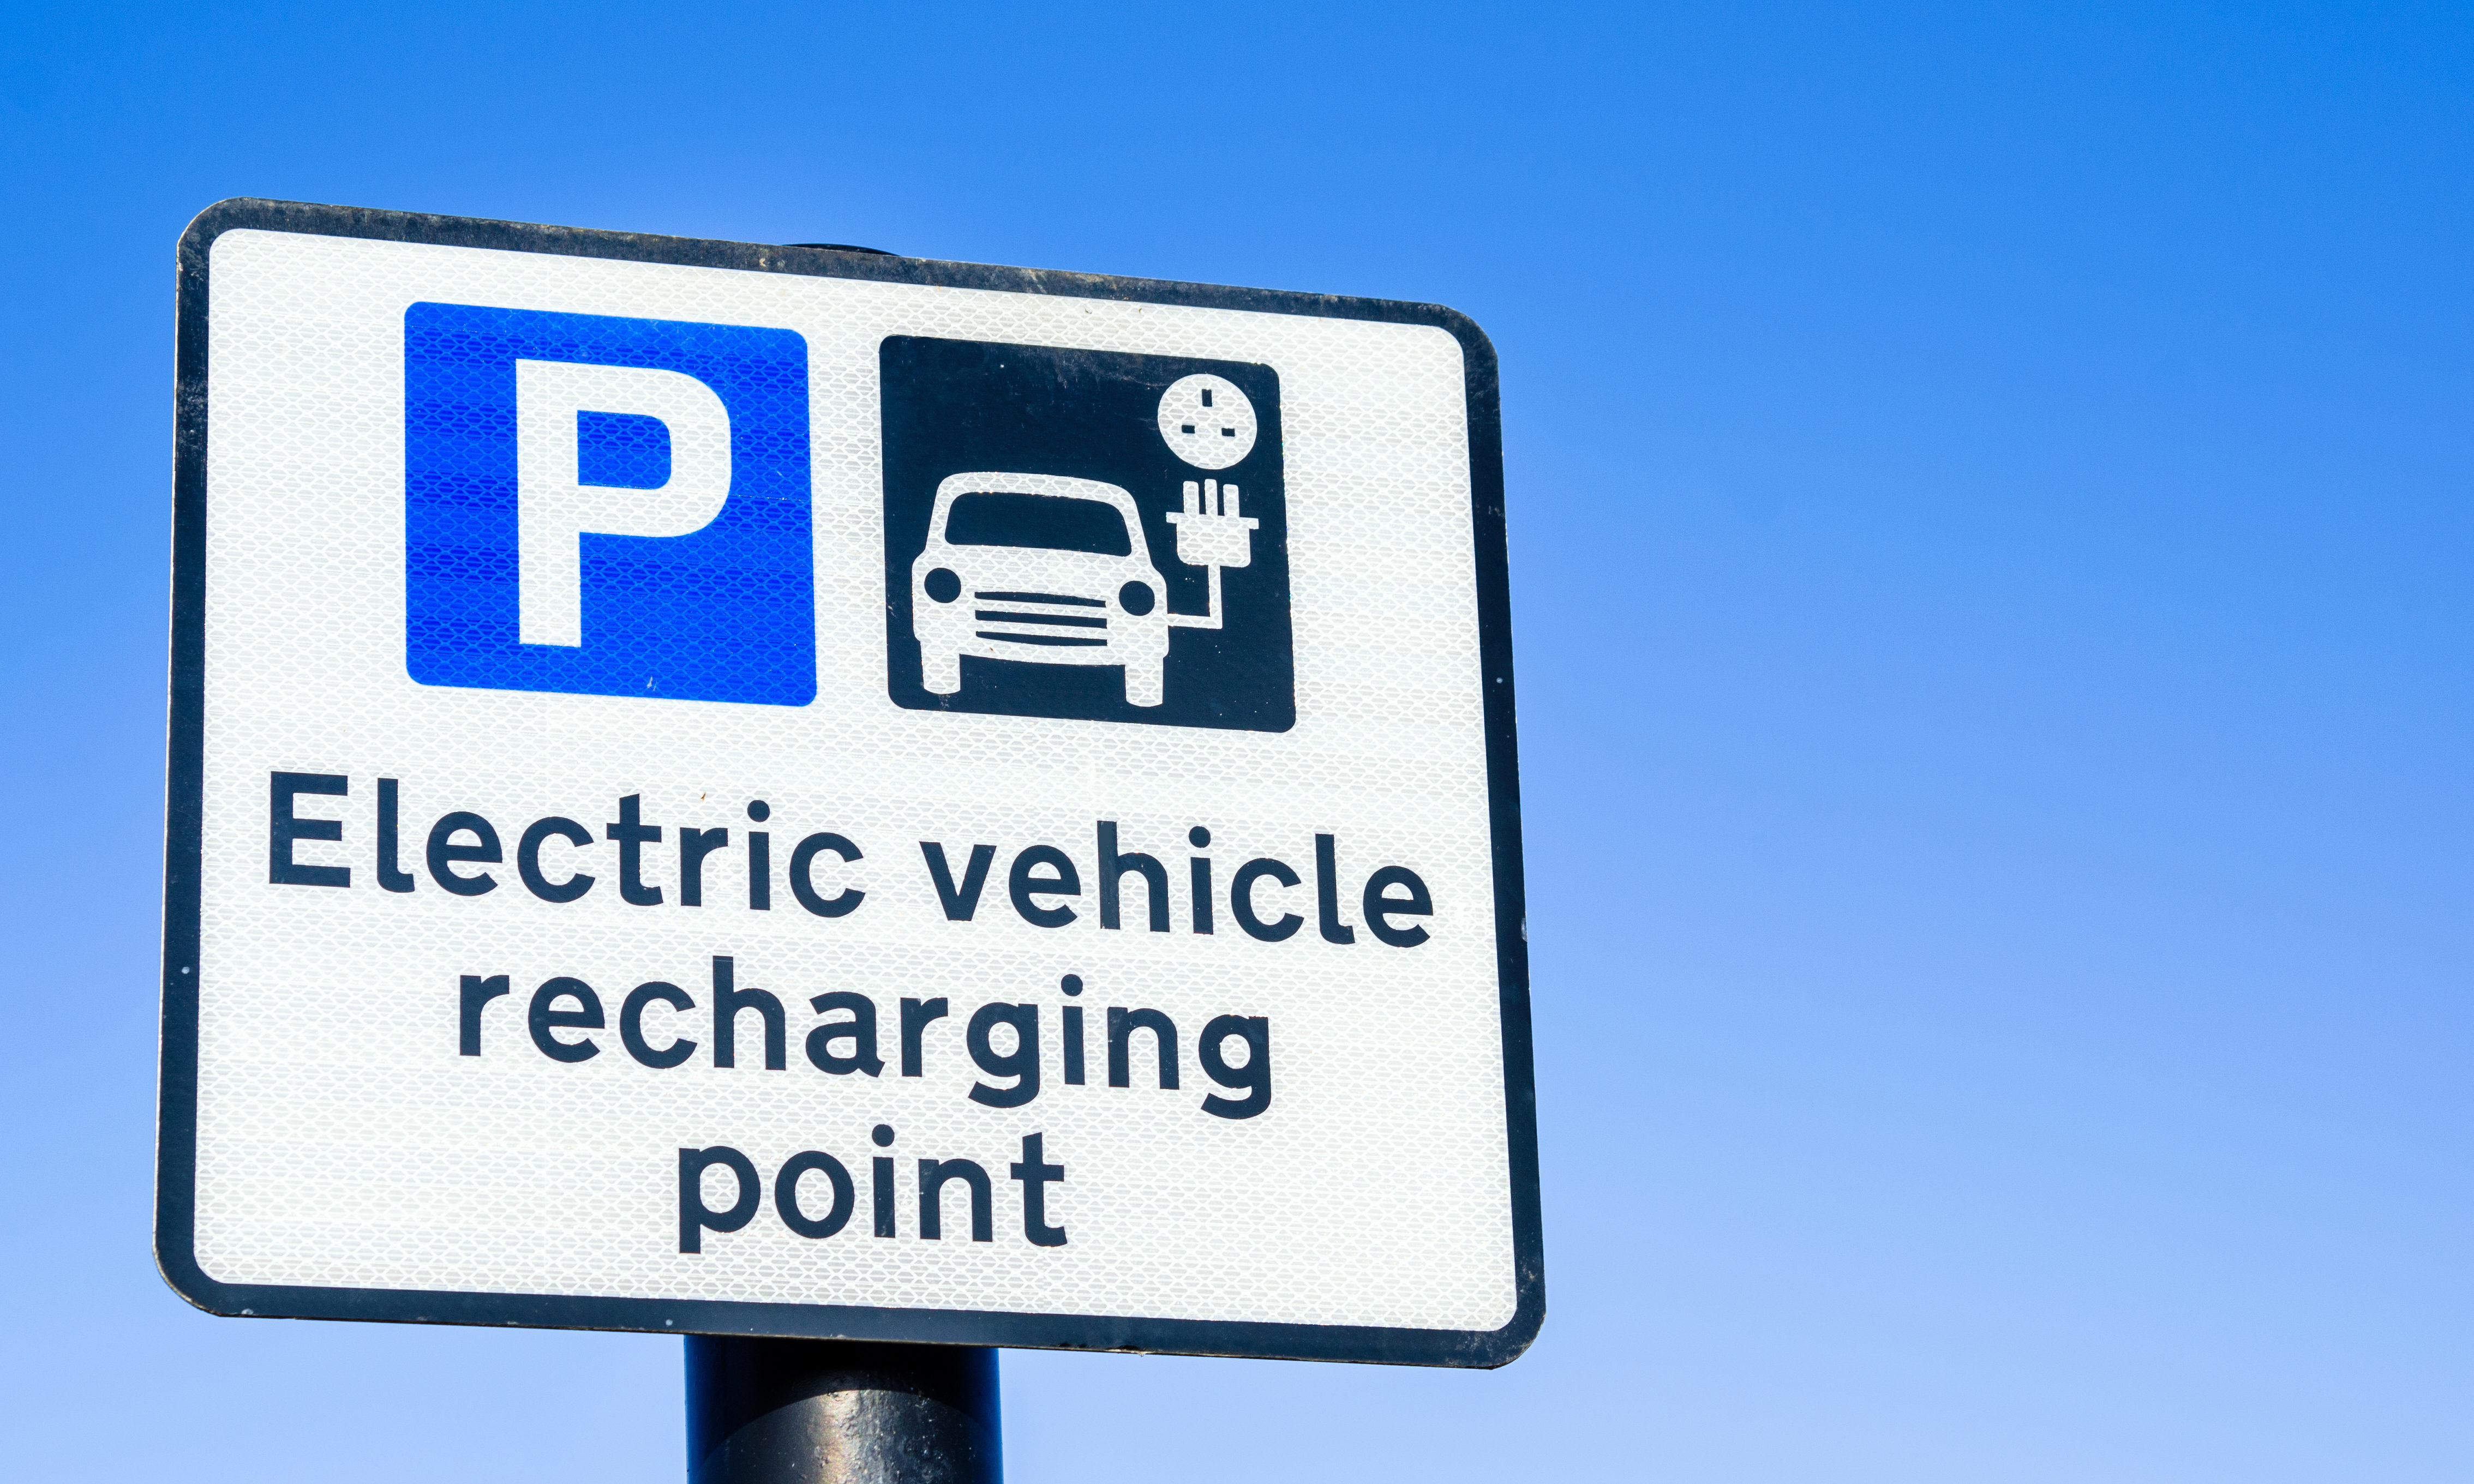 Parking Sign at a Recharging Station for Electric Vehicles and Clear Blue Sky